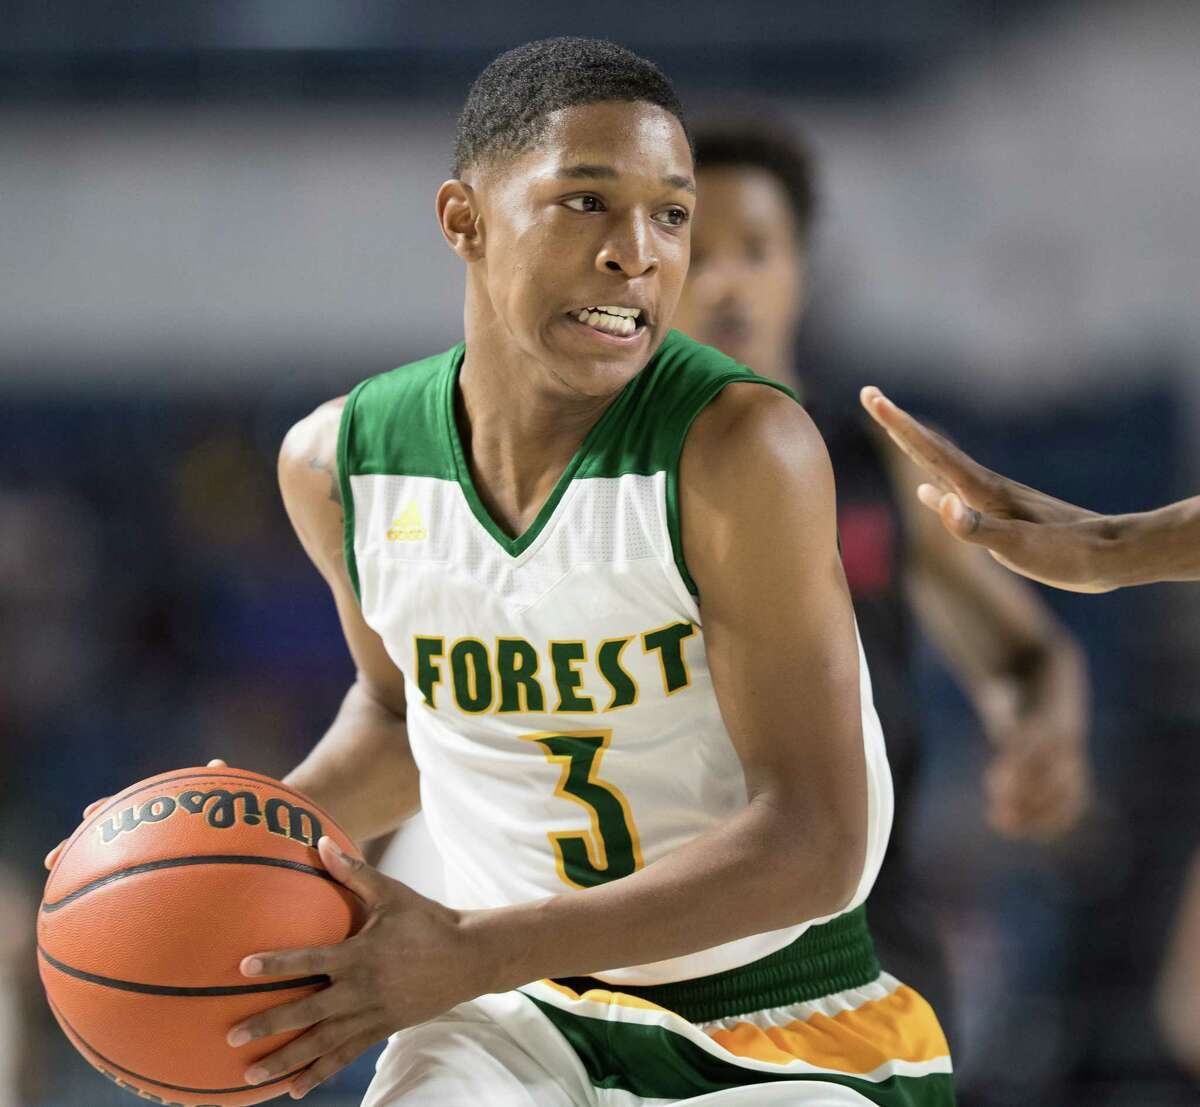 Taj Simmons (3) of the Klein Forest Eagles looks to pass the ball against the Westfield Mustangs in a 6A Bi-District playoff game on Tuesday, February 28, 2017 at the Delmar Fieldhouse in Houston, Texas.